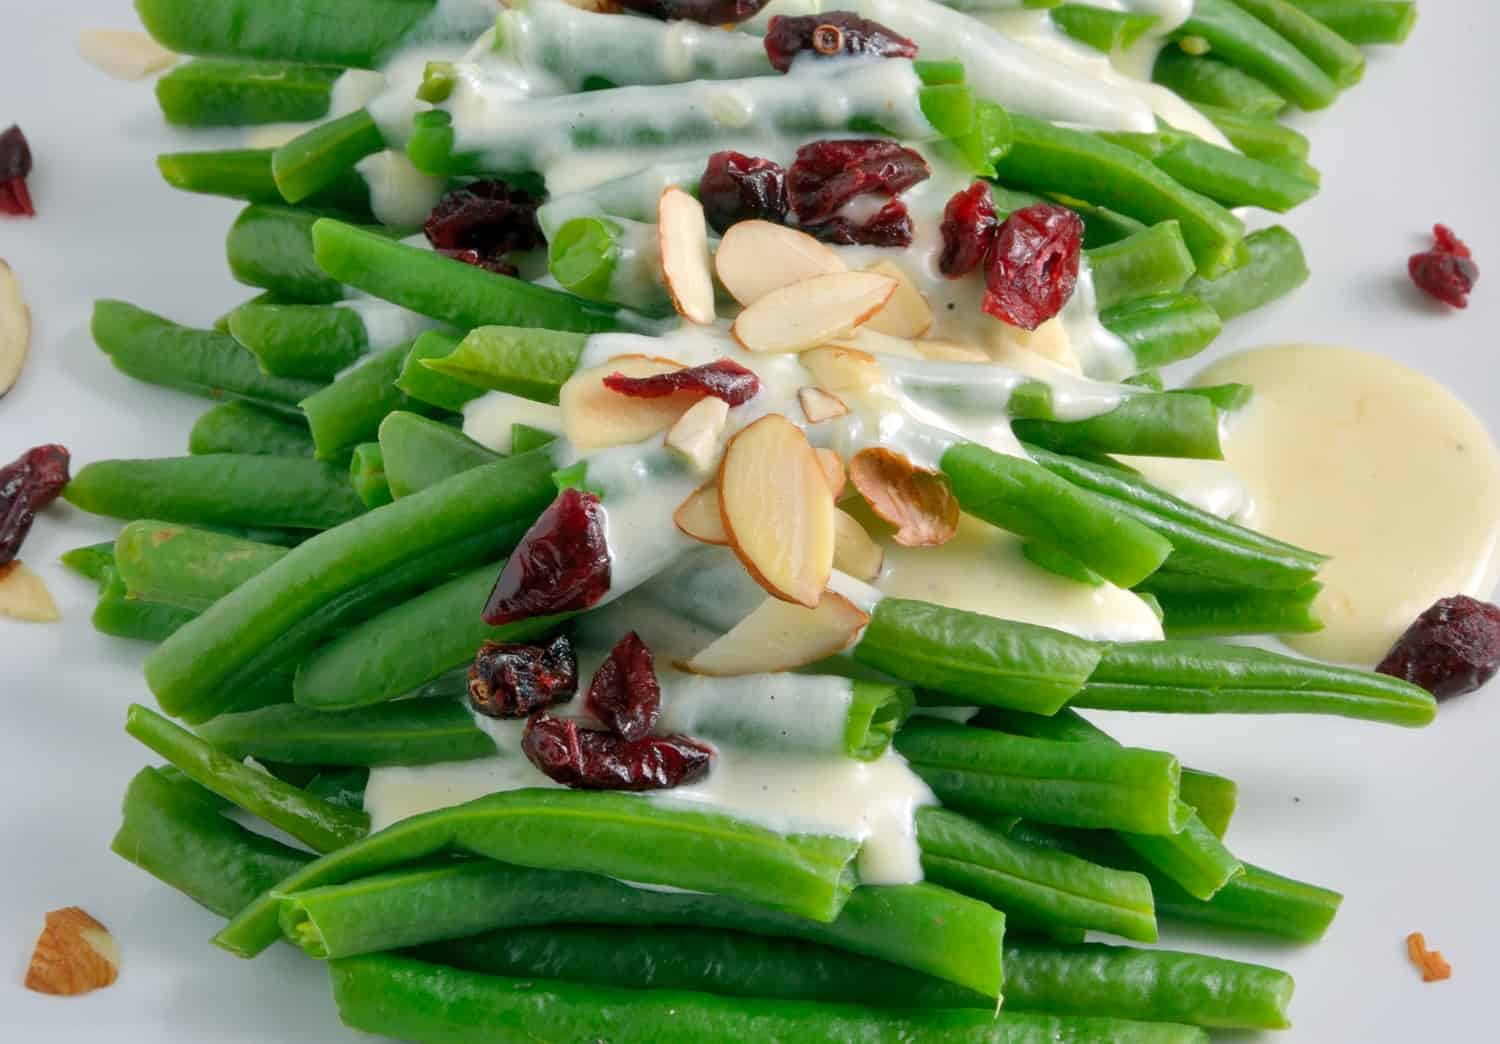 Greens Bean in a Mascarpone Cream Sauce Recipe- Steamed green beans in a rich and creamy mascaprone cream sauce topped with sweet dried cranberries and crunchy sliced almonds.